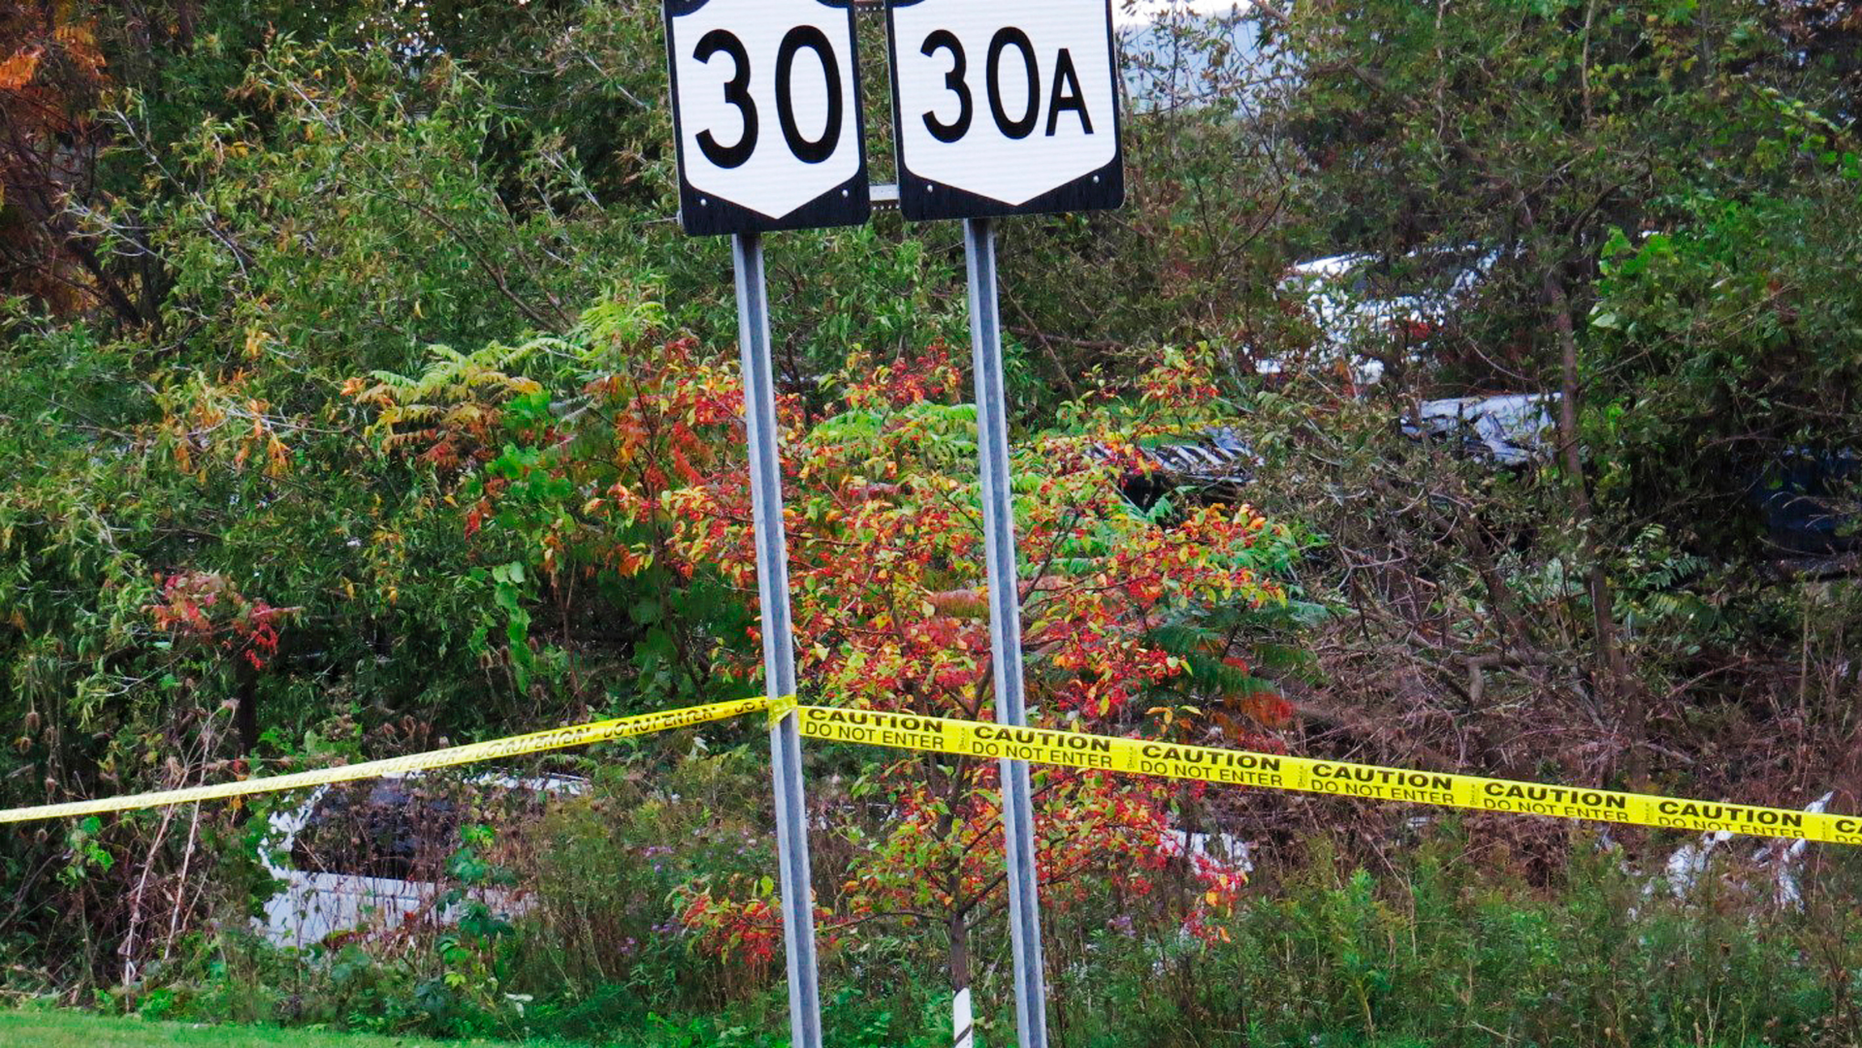 FILE - In this Saturday, Oct. 6, 2018 file photo, a limousine, left, has landed in the woods following a fatal crash in Schoharie, N.Y. The operator of a limousine company pleaded not guilty Wednesday, April 10, 2019, to 20 counts each of criminally negligent homicide and second-degree manslaughter in a crash that killed 20 people in rural upstate New York. Nauman Hussain was arraigned Wednesday in Schoharie County Court. (Tom Heffernan Sr. via AP, File)